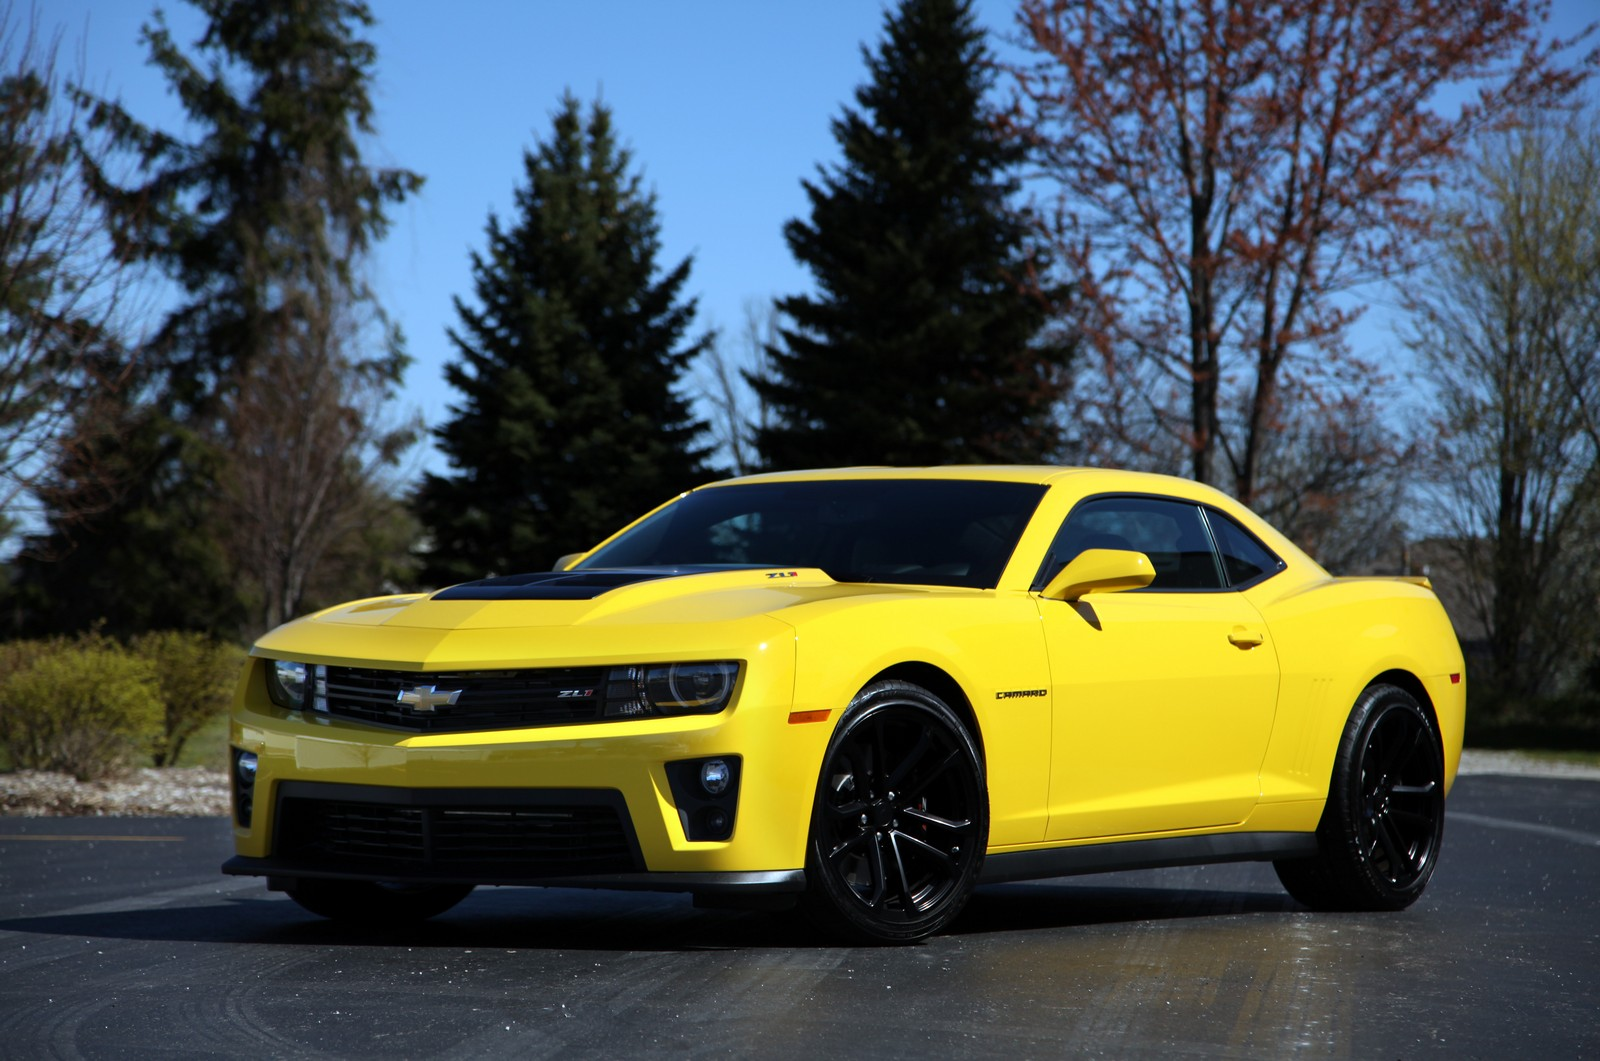 Lingenfelter 2012 camaro zl1 wallpaper and background - Free camaro wallpaper download ...